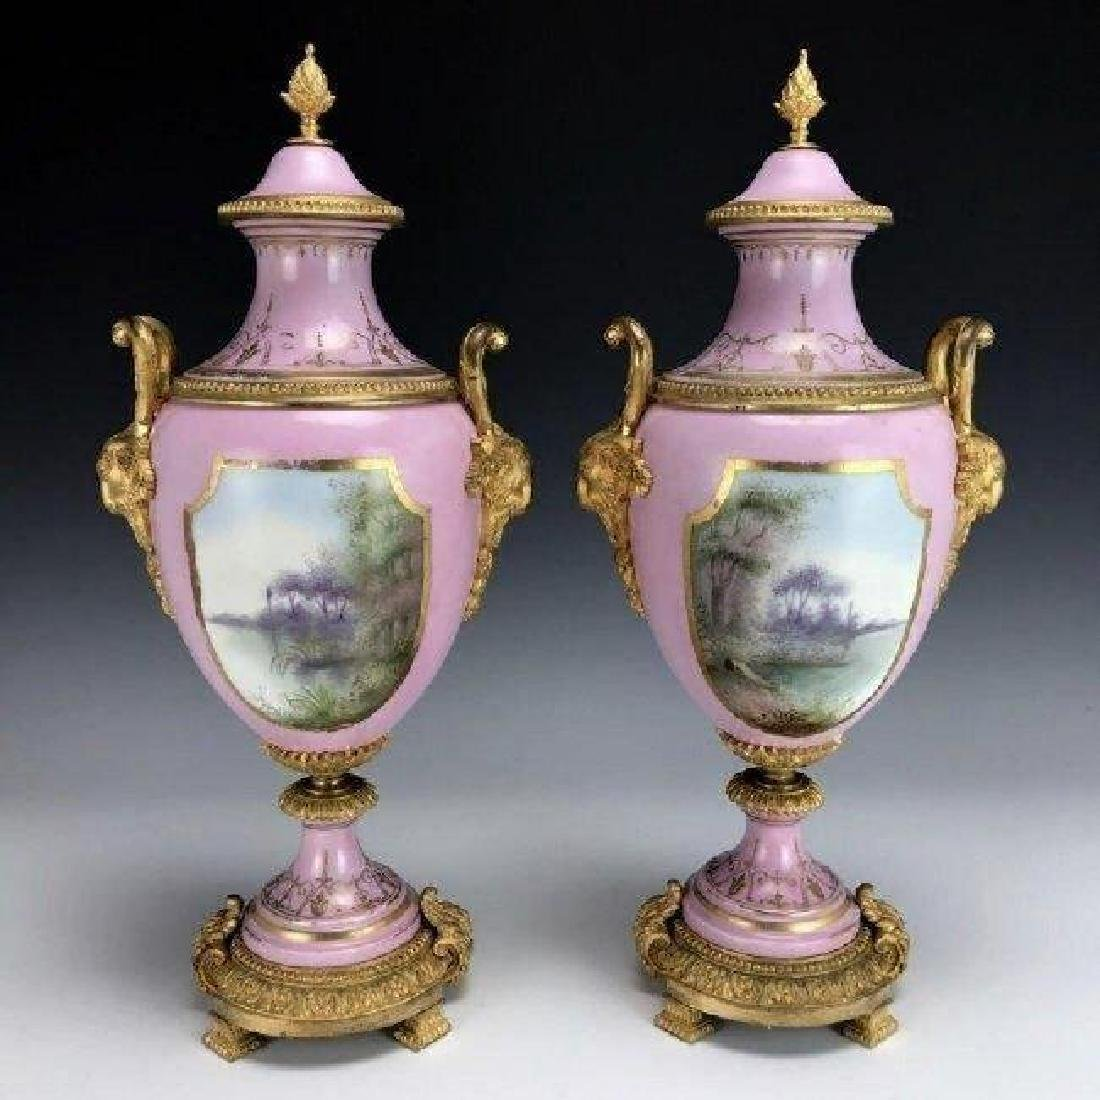 PAIR OF 19TH CENTURY DORE BRONZE MOUNTED SEVRES VASES - 2